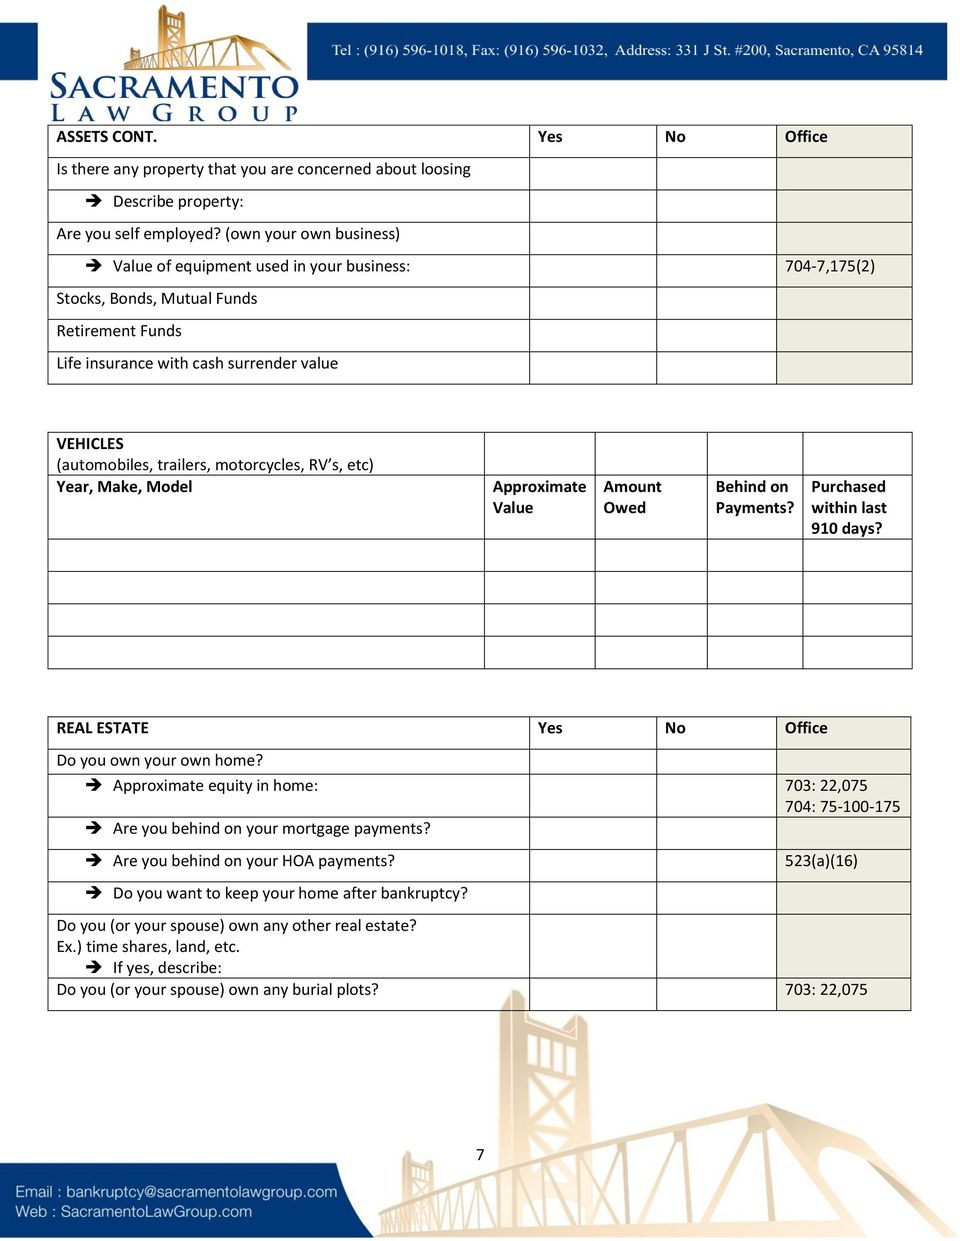 motorcycles, RV s, etc) Year, Make, Model Approximate Value Amount Owed Behind on Payments? Purchased within last 910 days? REAL ESTATE Yes No Office Do you own your own home?